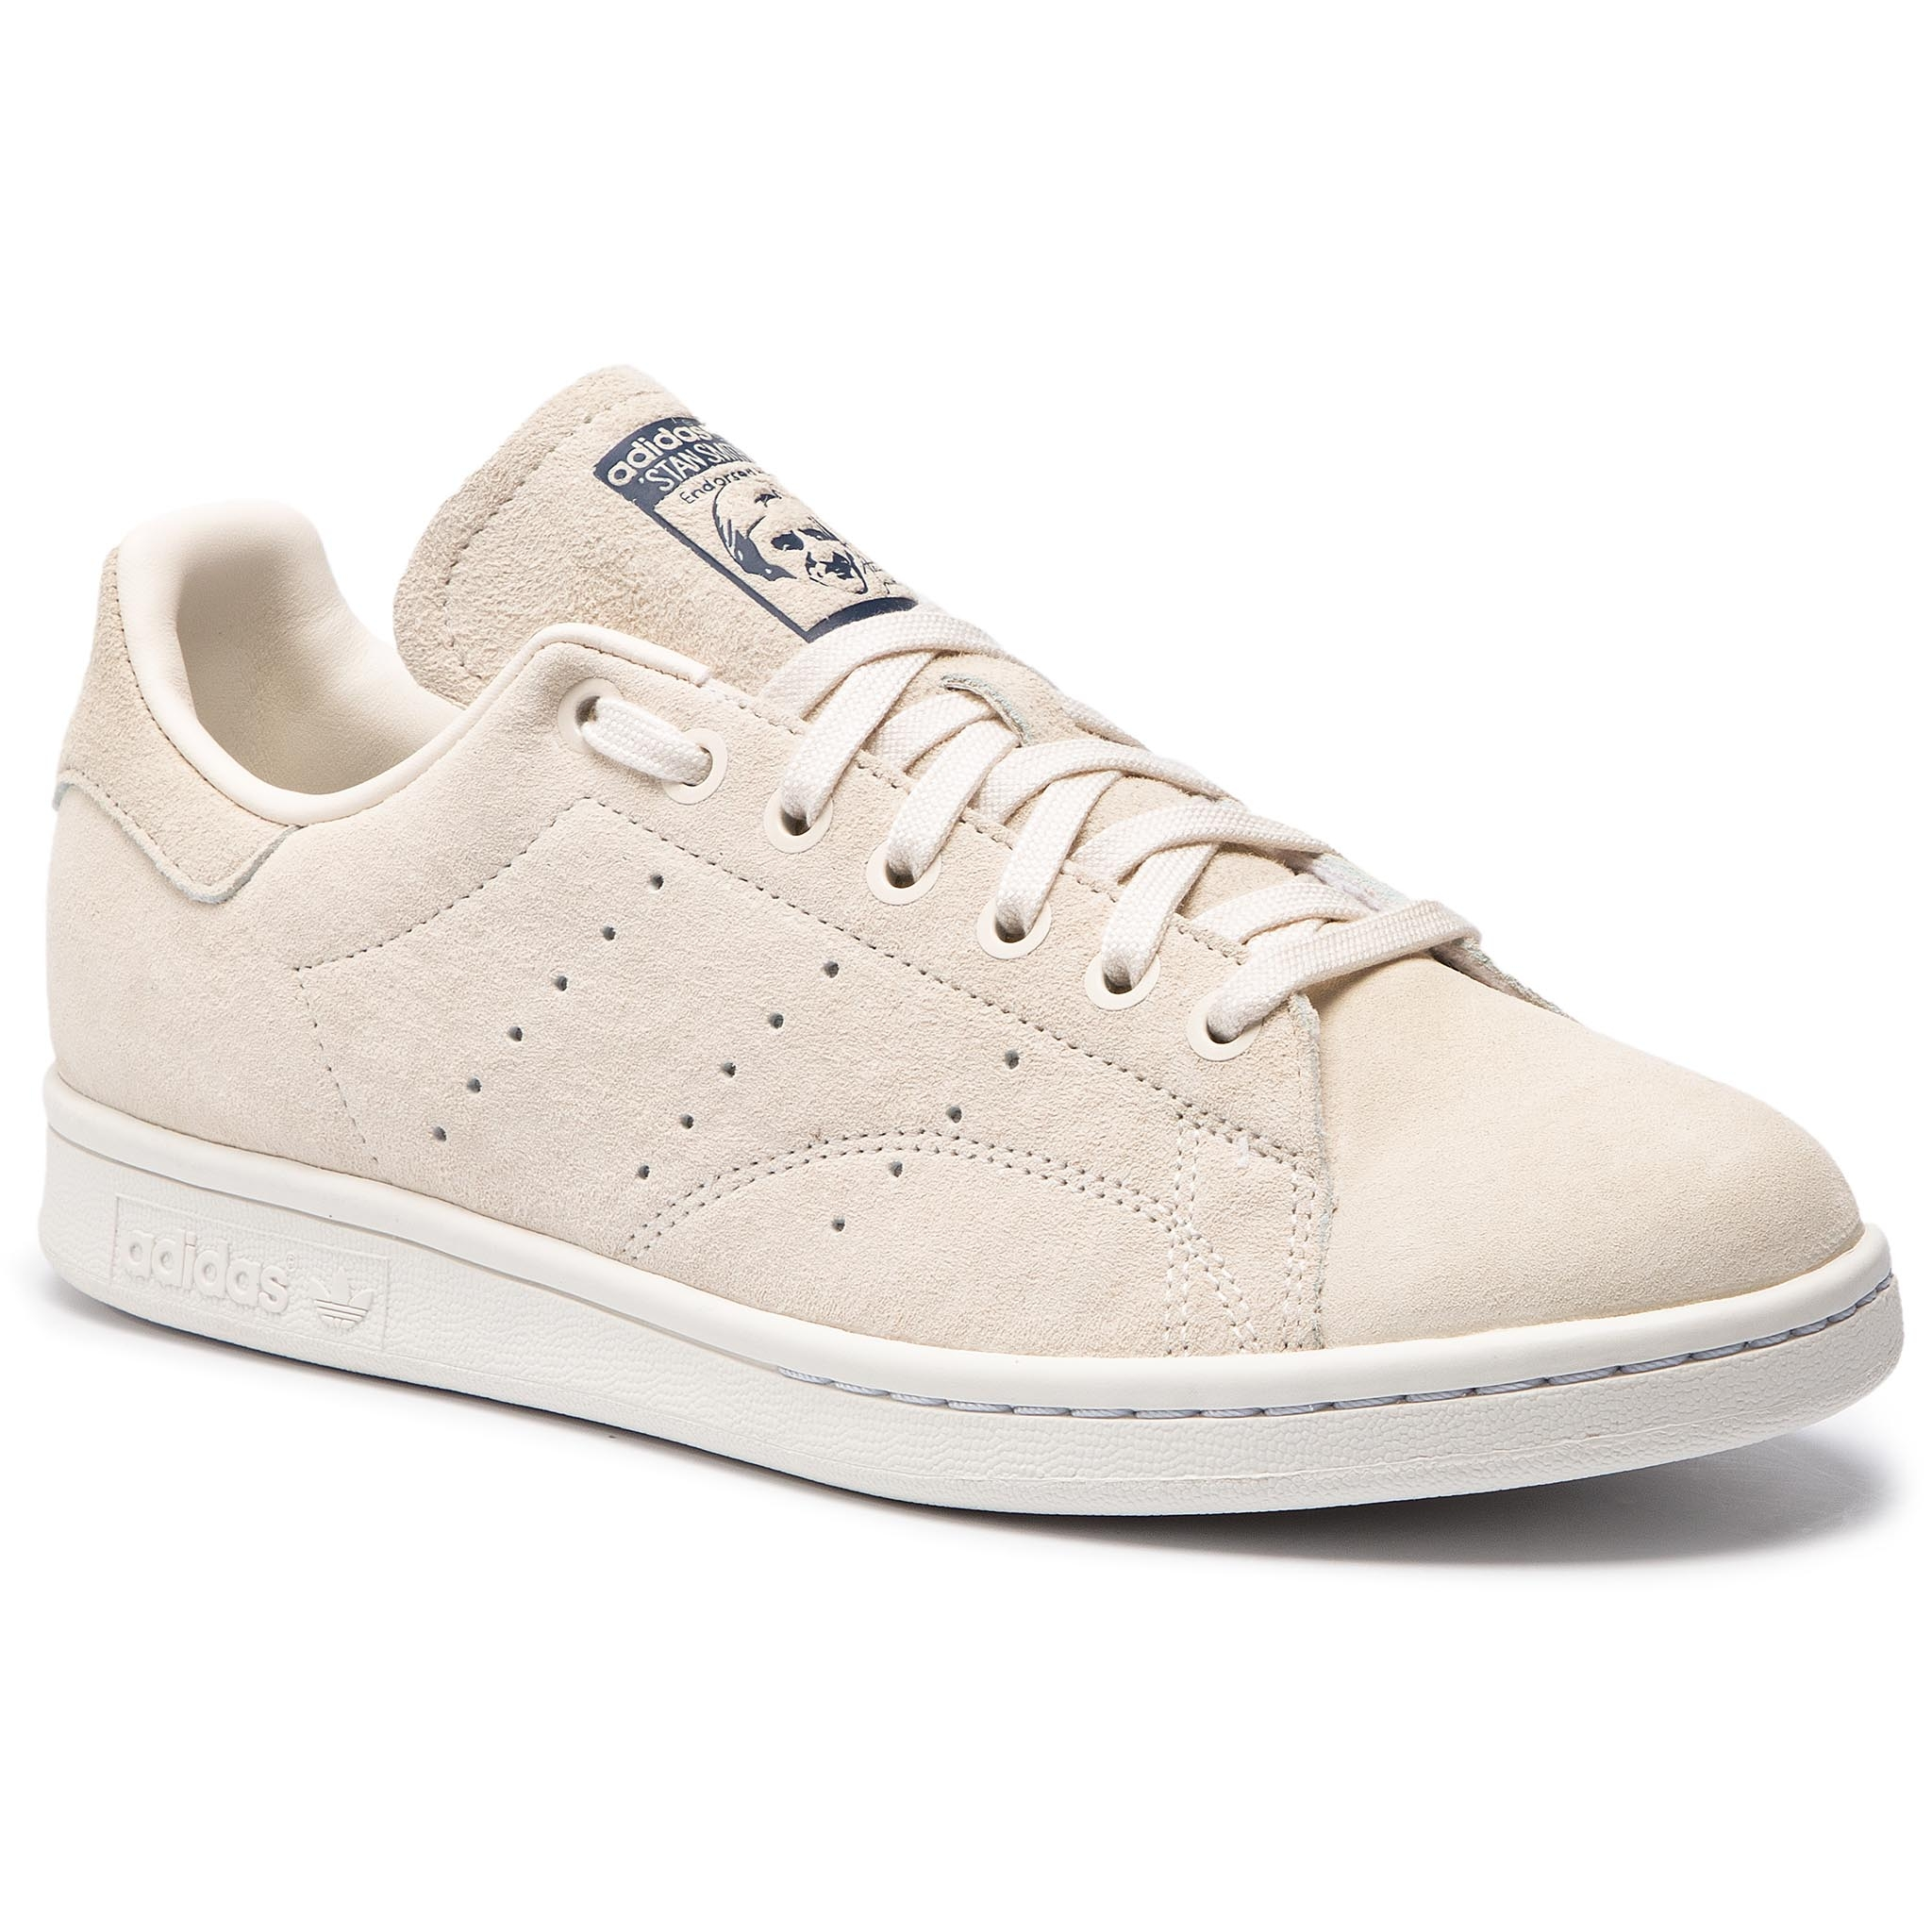 sneakers for cheap e3cbf 1a54e Shoes adidas Stan Smith CM8440 Cwhite Crywht Cburgu